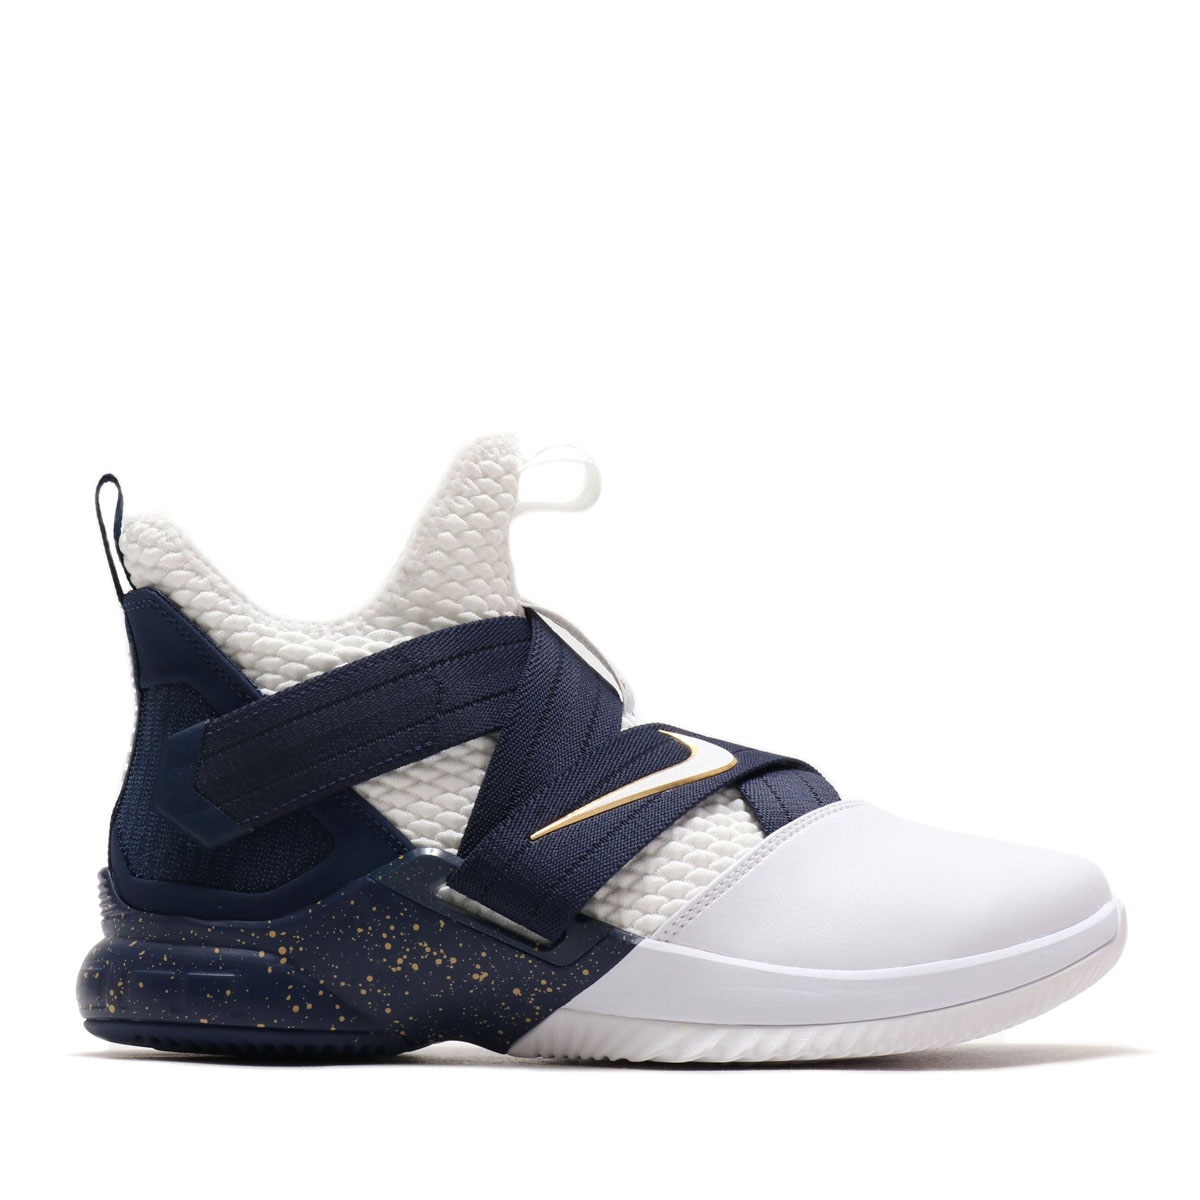 72d3ae828c17 NIKE LEBRON SOLDIER XII SFG EP (Nike Revlon soldier XII SFG EP) WHITE WHITE-MIDNIGHT  NAVY-MINERAL YELLOW 18SU-S